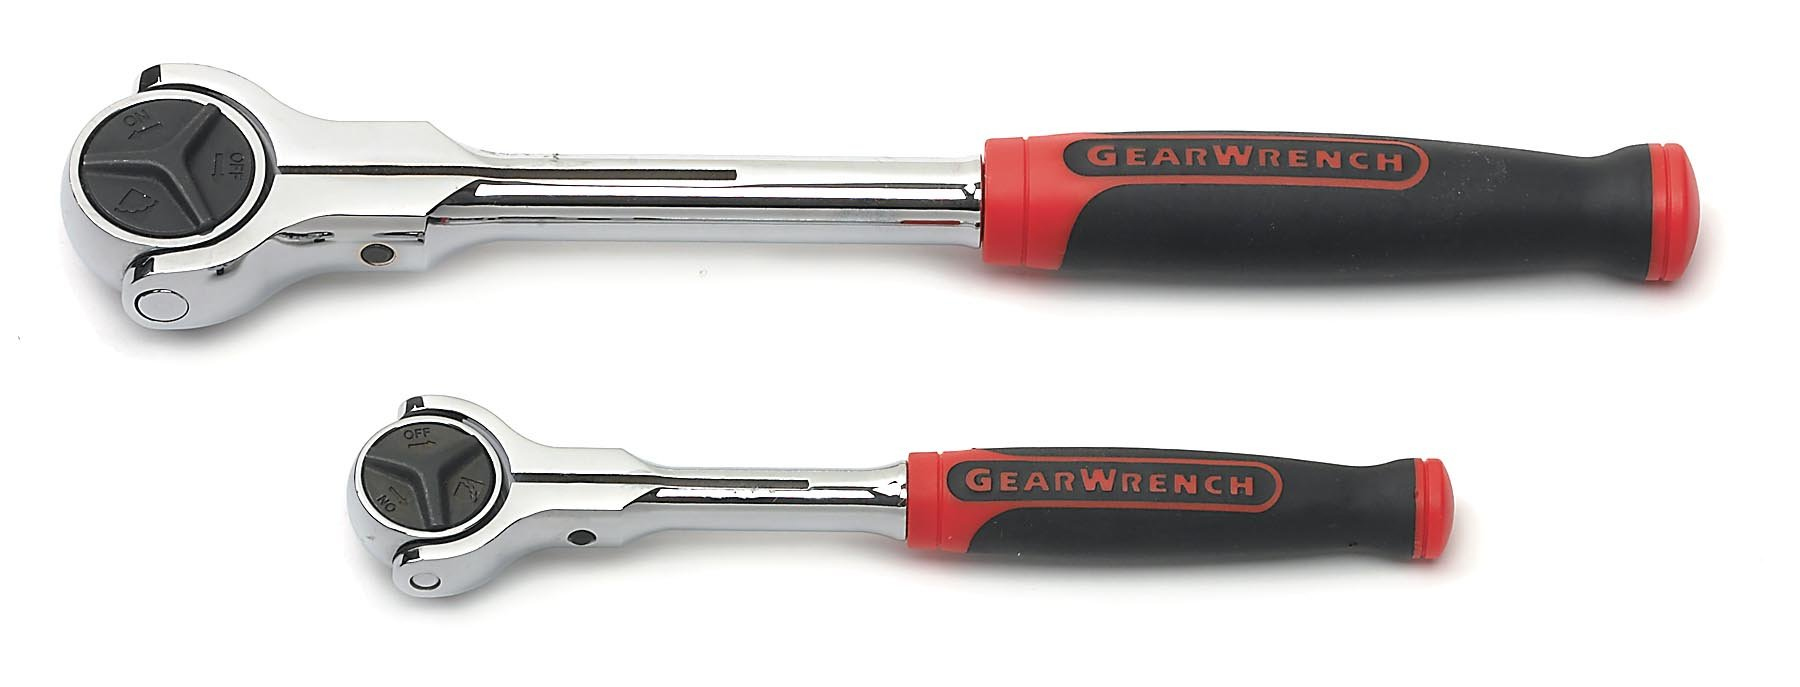 GearWrench 1/4 & 3/8 81223 2 Pc. Roto Ratchet Set- Cushion Grip by GearWrench